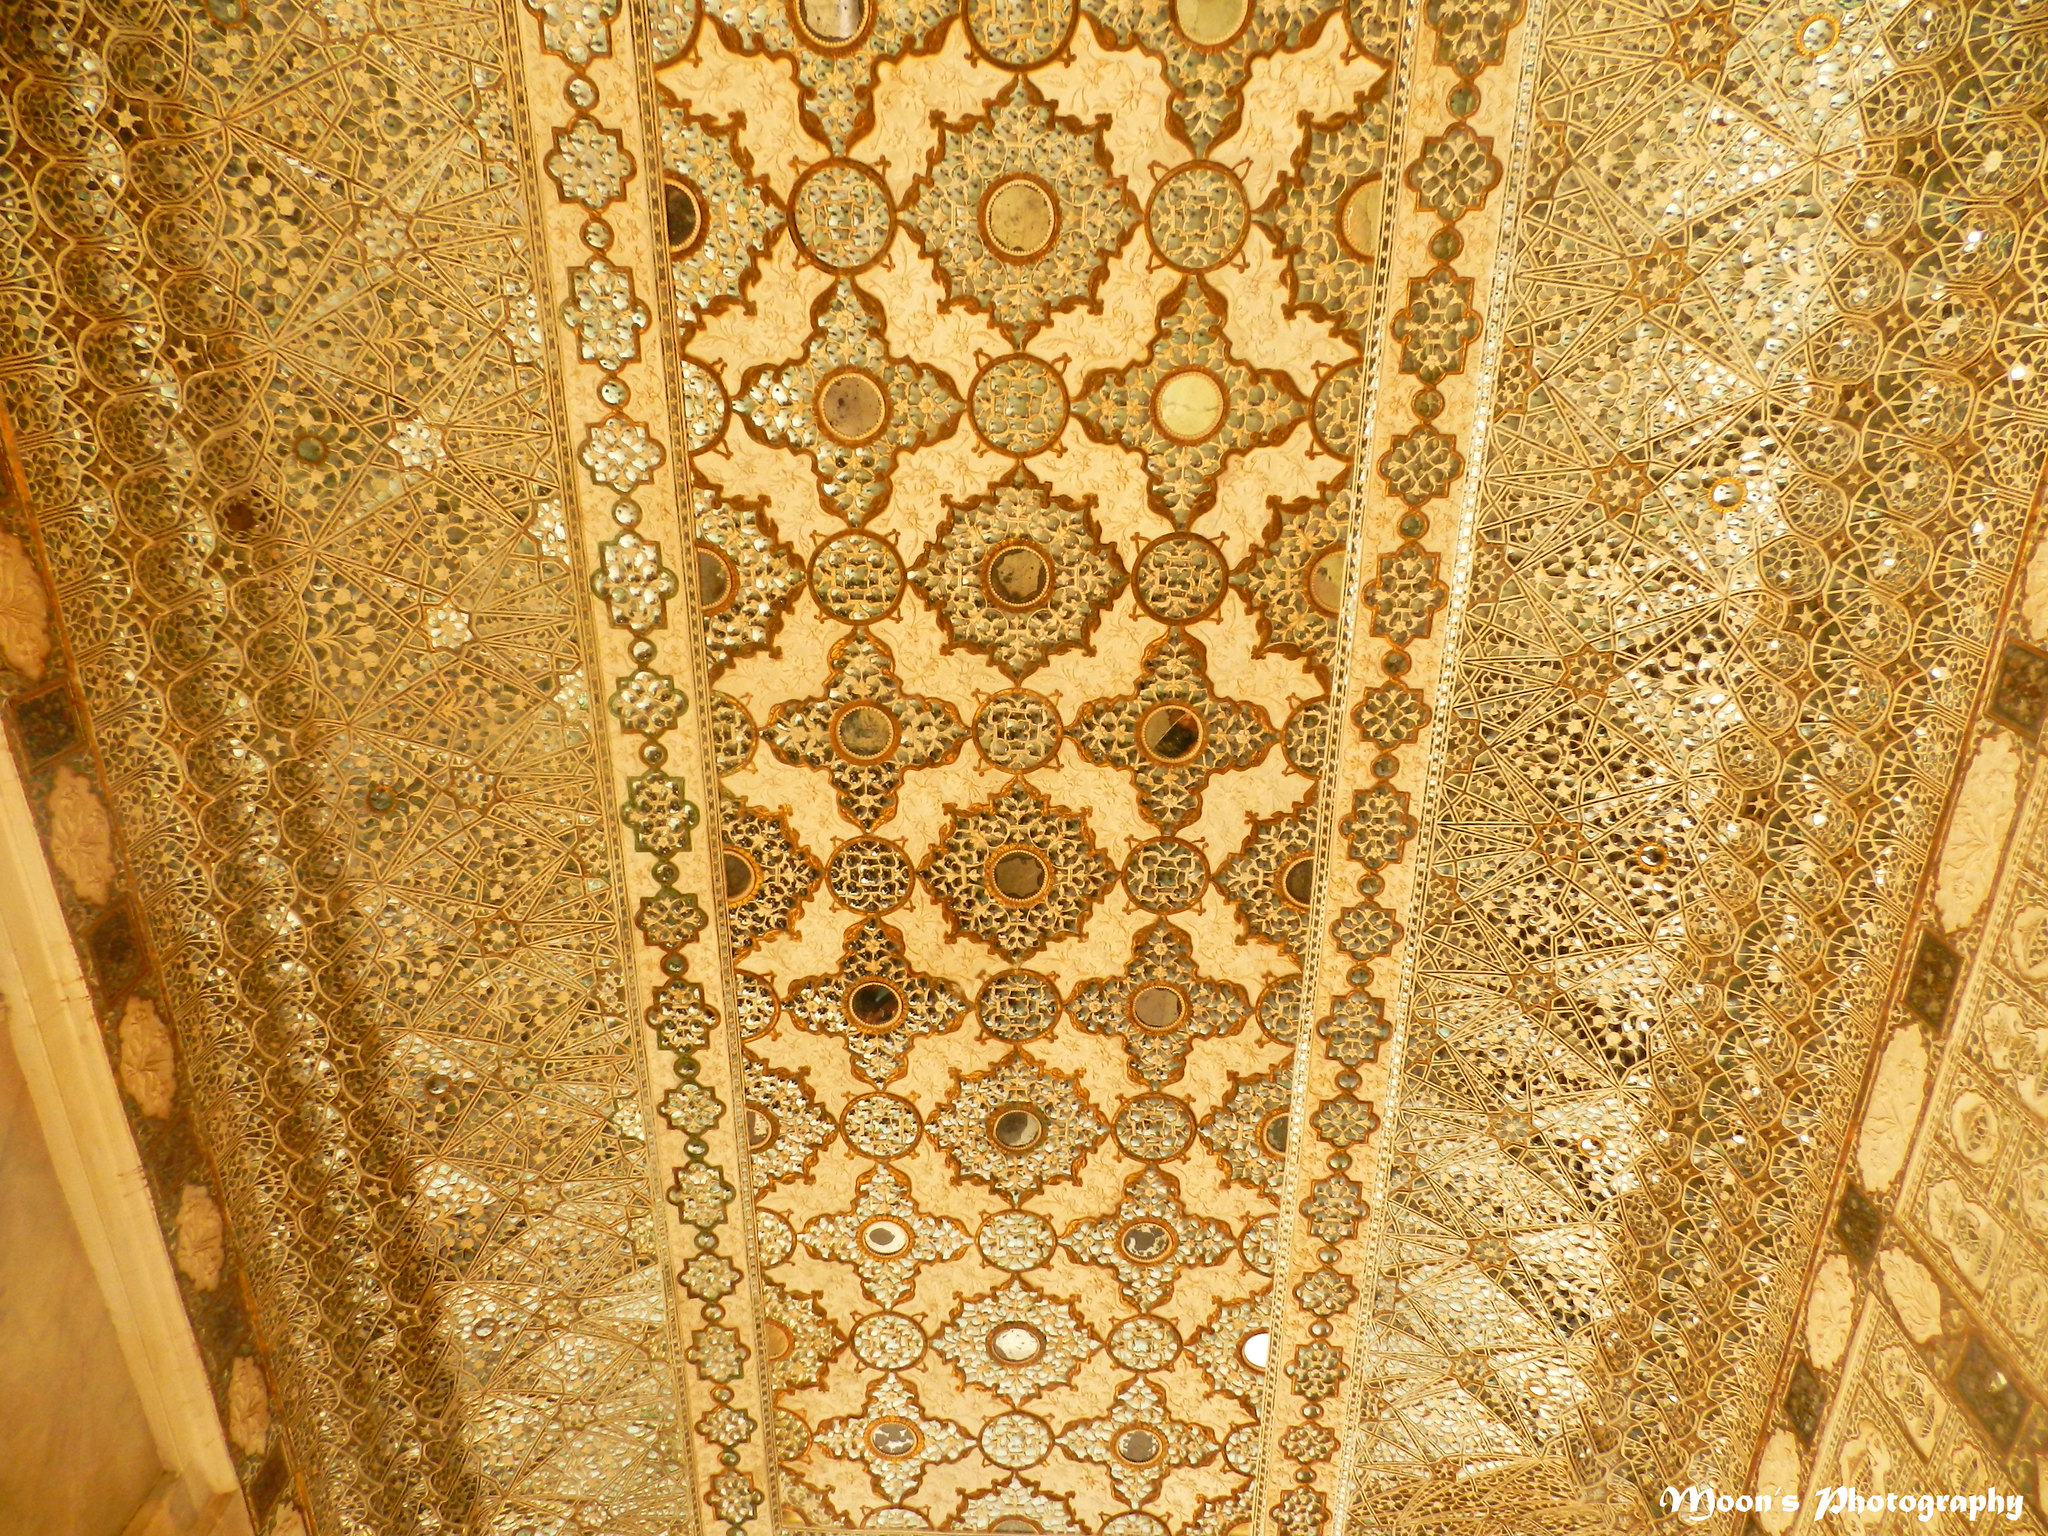 sheesh mahal, mirror work, mirror palace, amar fort, amaer palace, jaipur